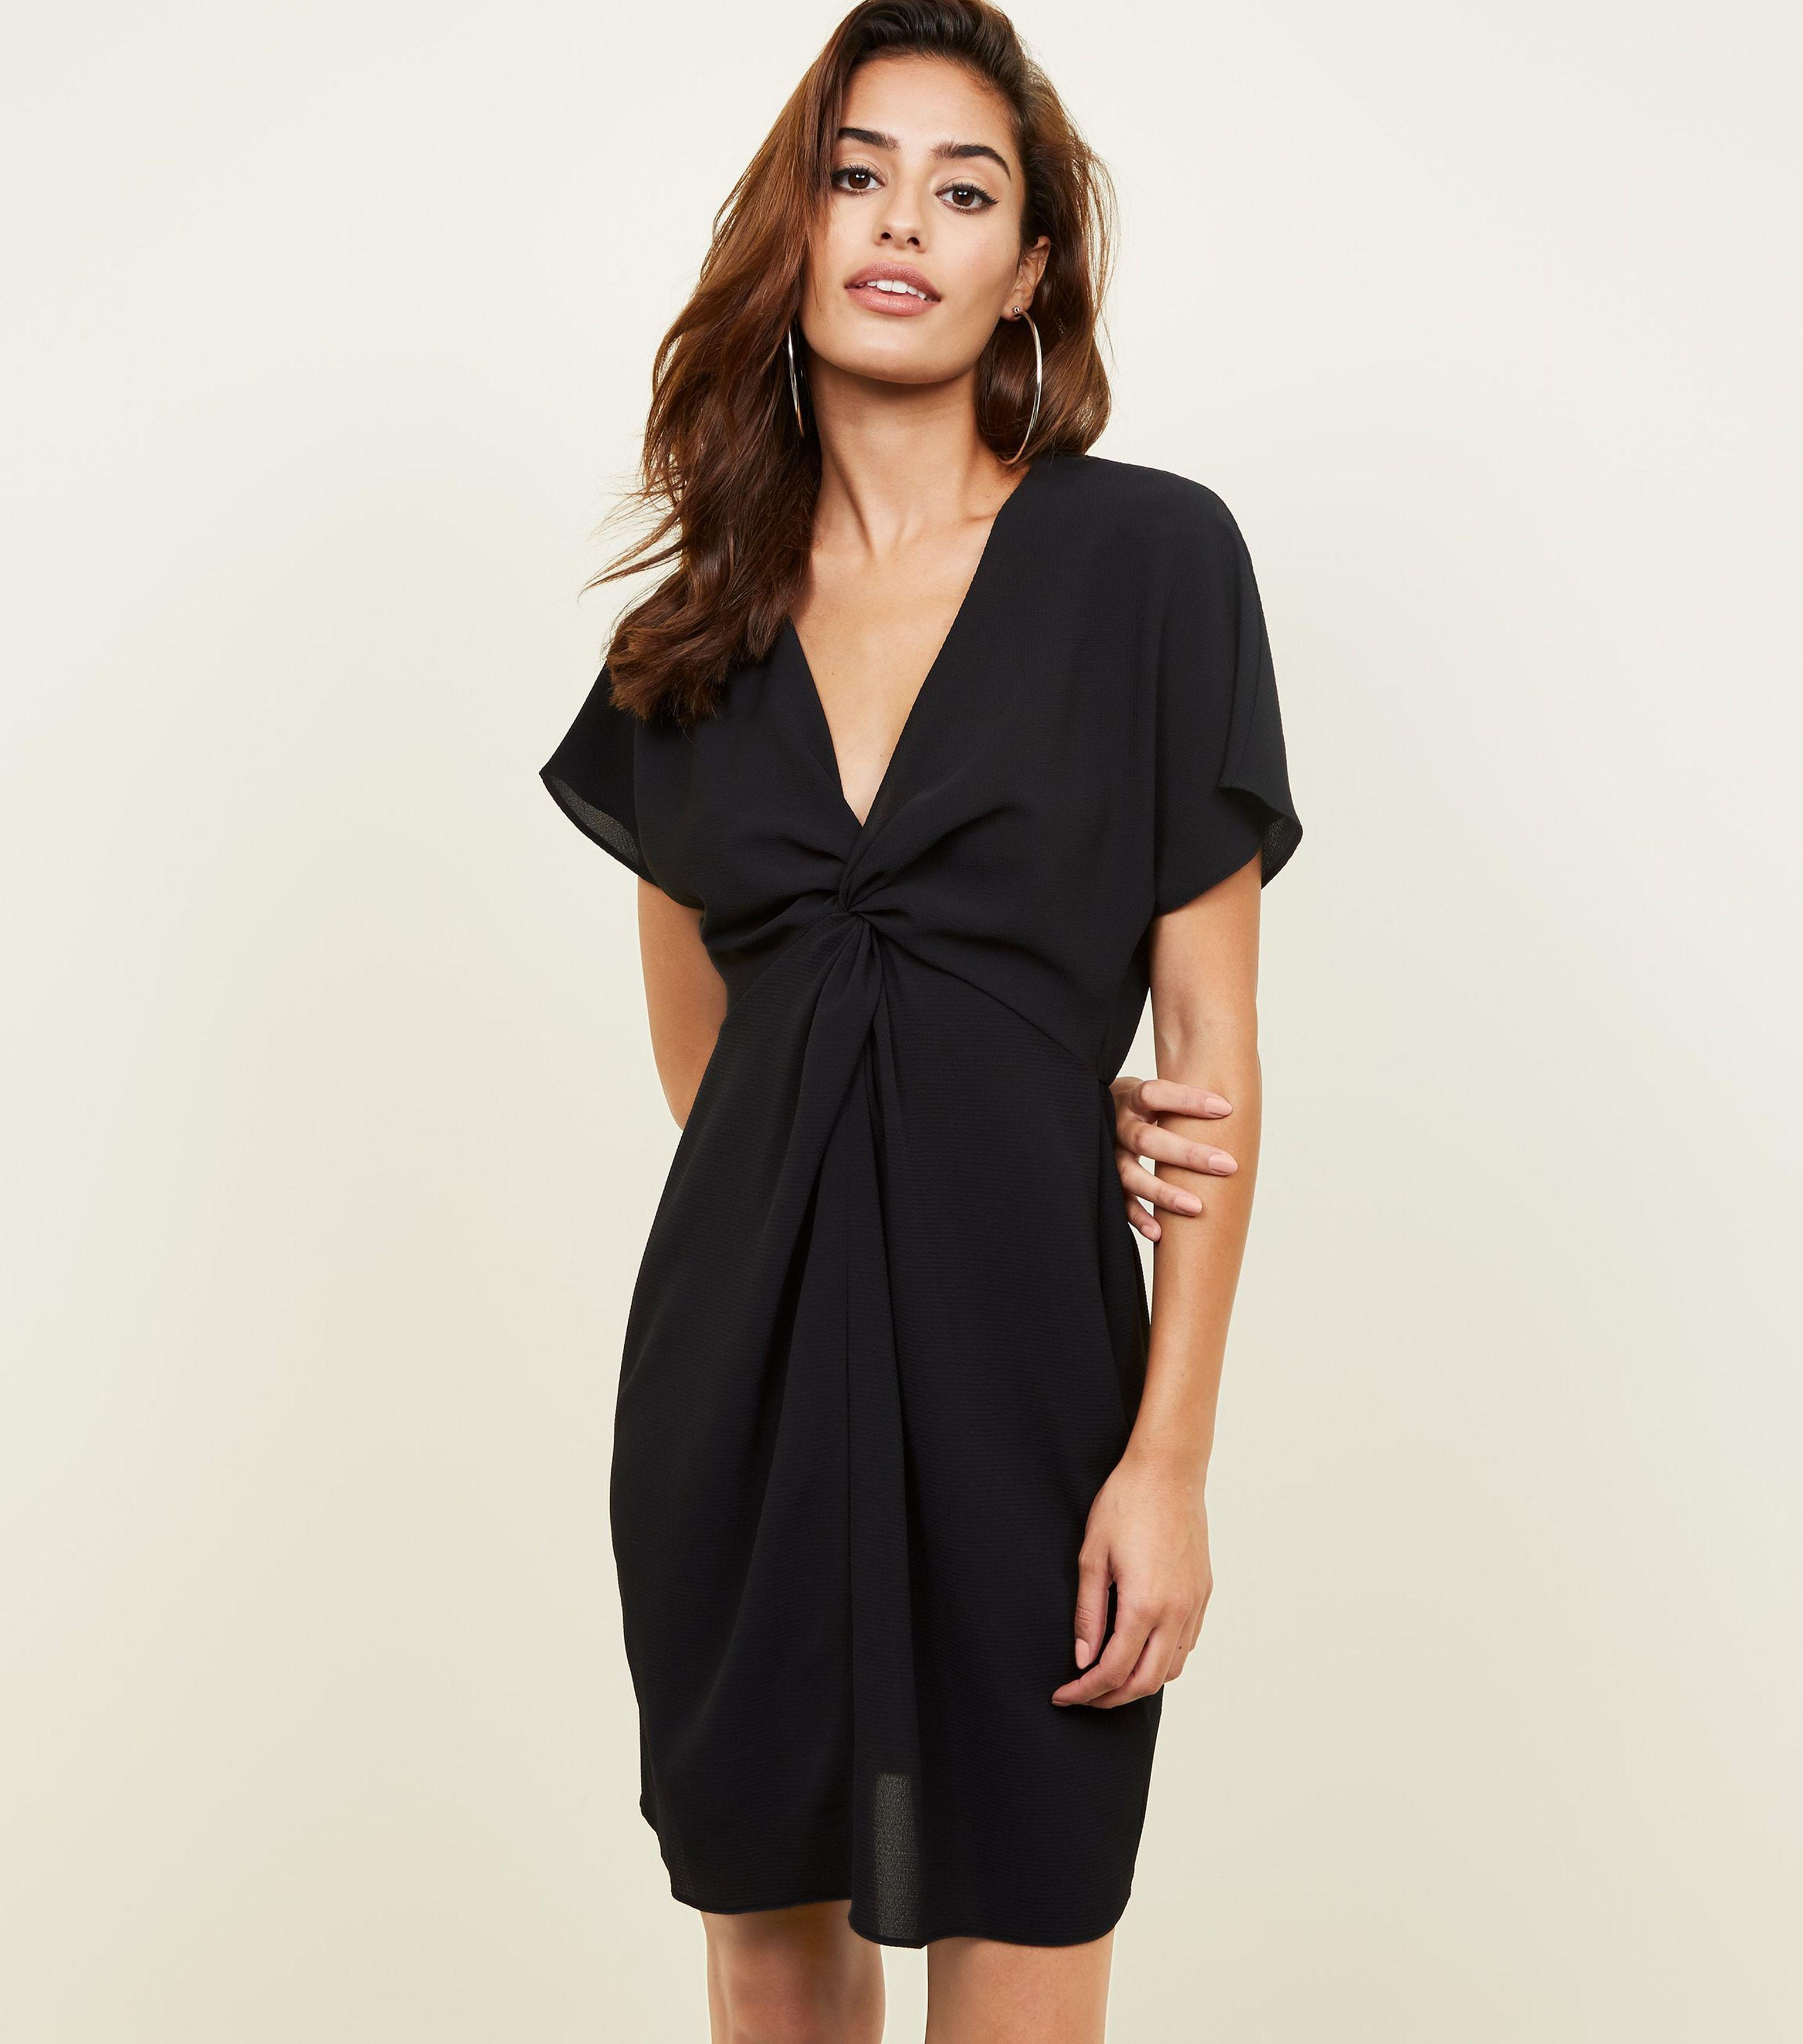 d9ea964ff1 New Look Black Batwing Sleeve Twist Front Dress in Black - Lyst